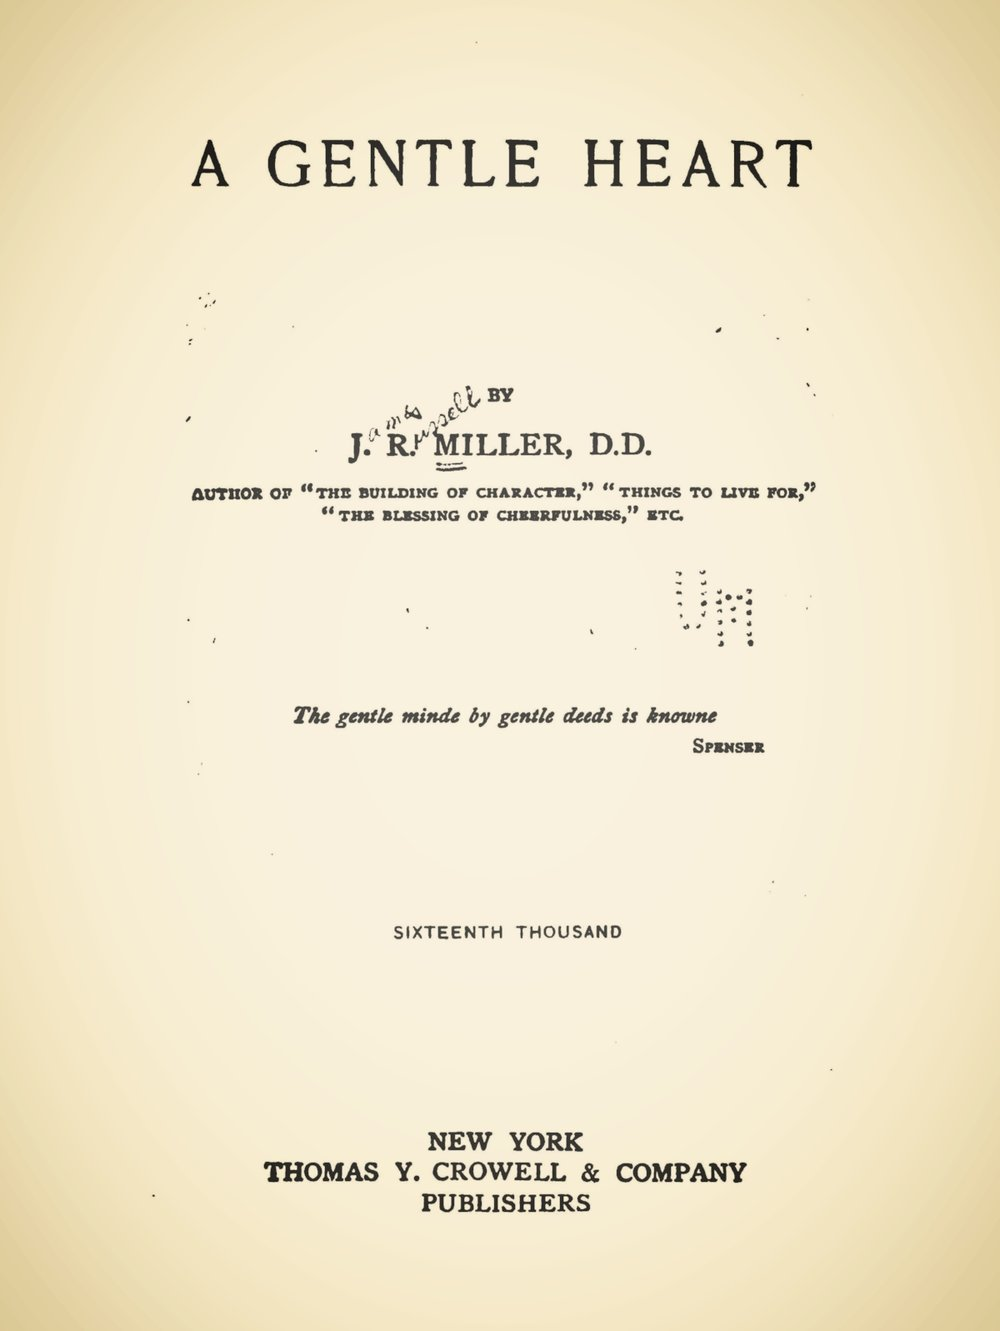 Miller, James Russell, A Gentle Heart Title Page.jpg